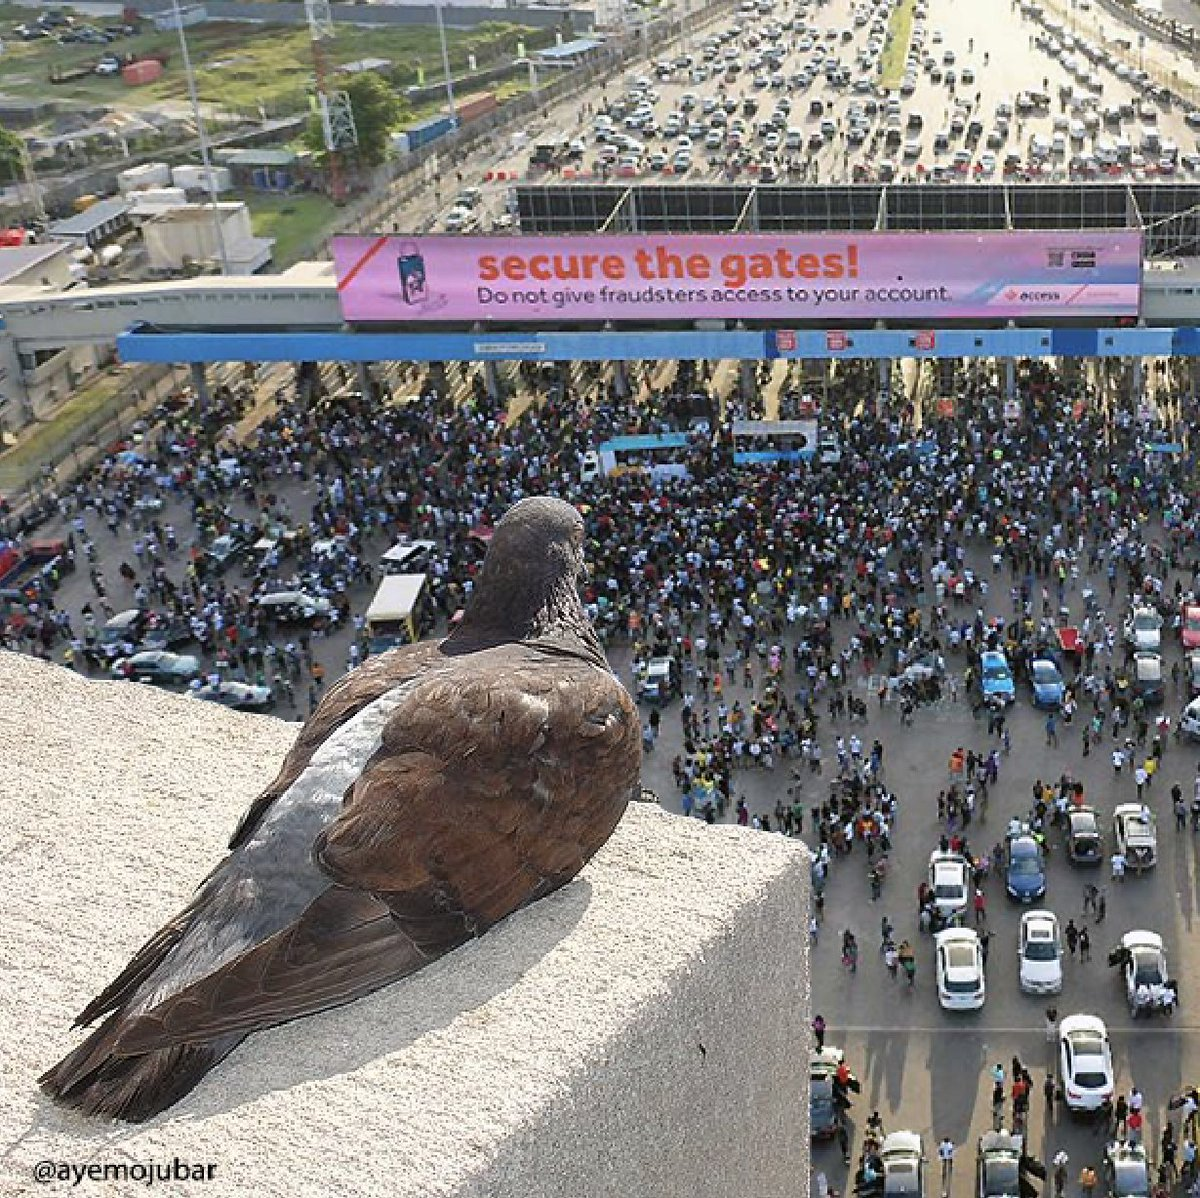 The Pigeon Who Saw Everything and told her fellow pigeons about #LekkiMassacre #EndBadGovernanceinNIGERIA #EndSARS